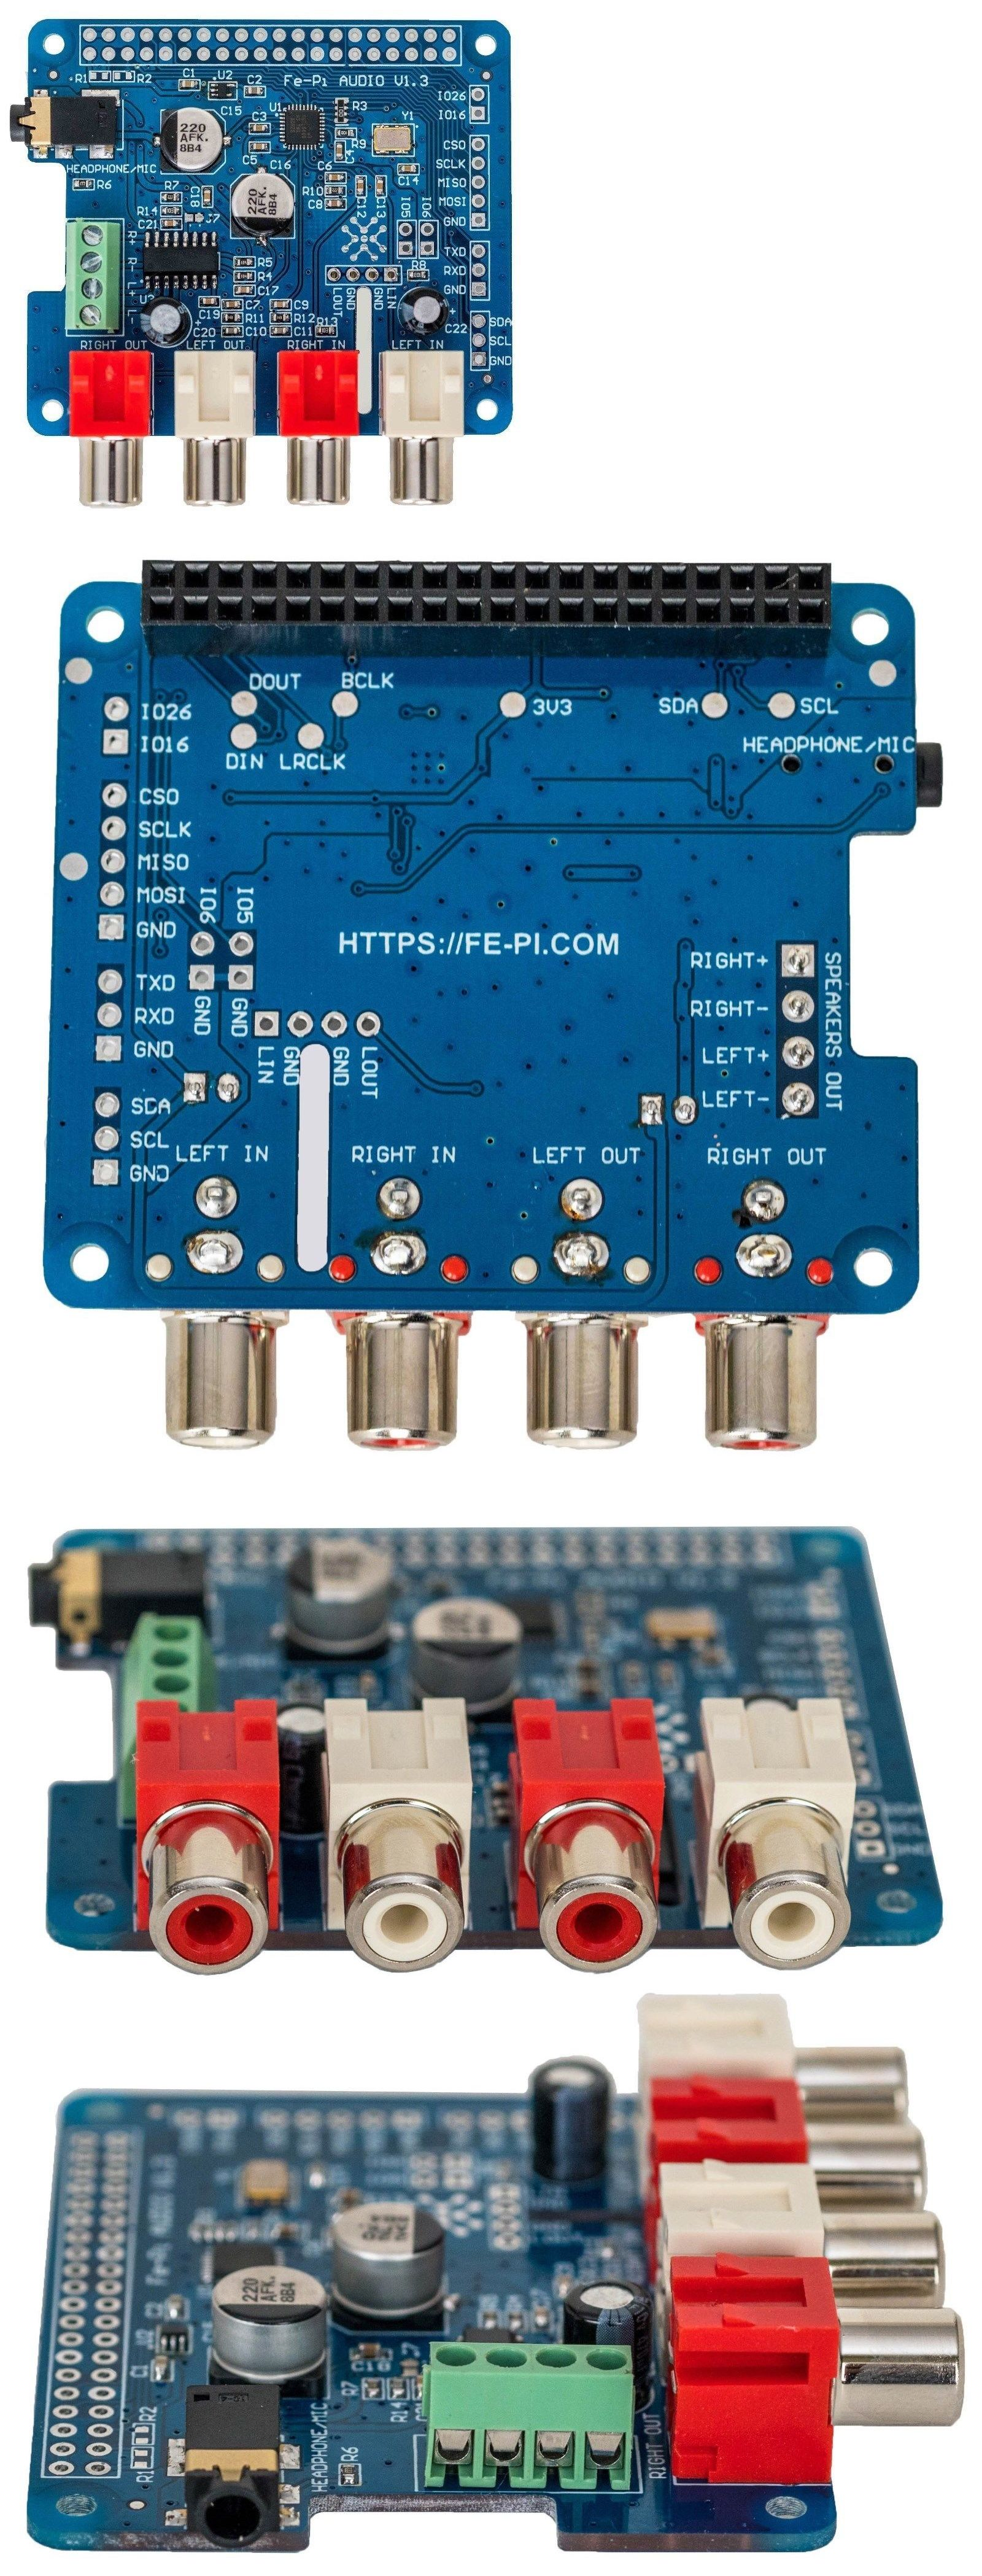 Other Components and Parts 16145: Fe-Pi Raspberry Pi 2 3 B+